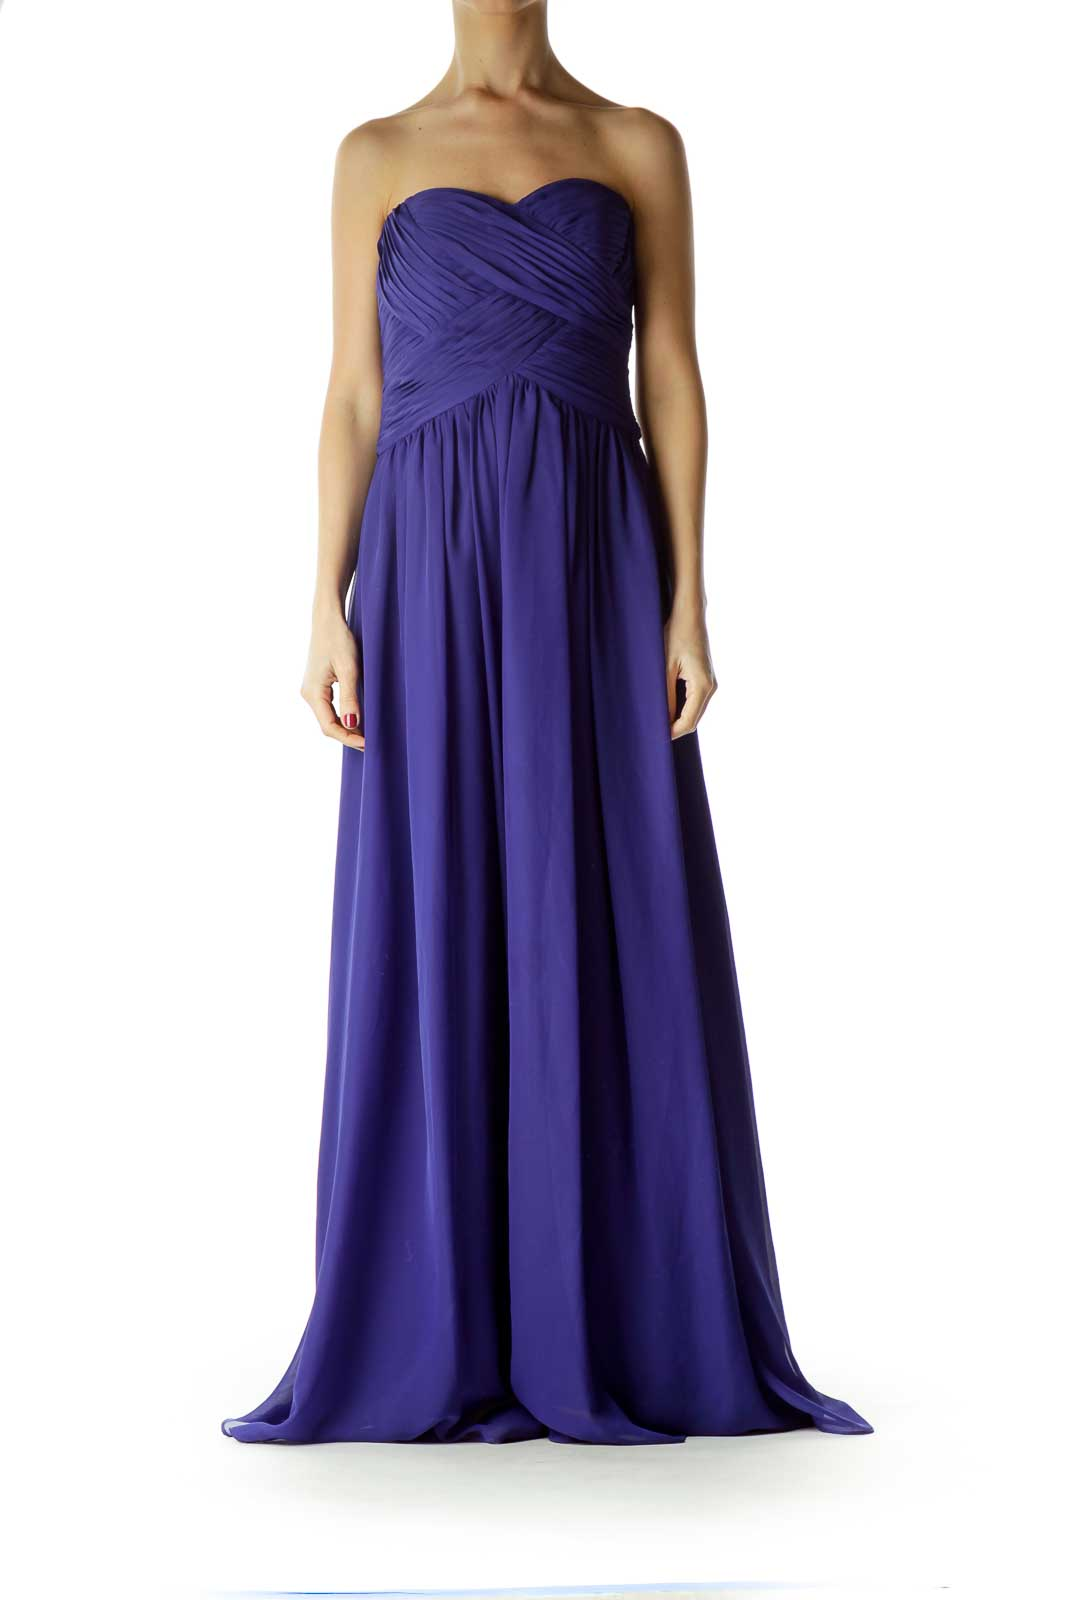 Blue Strapless Empire Waist Evening Dress